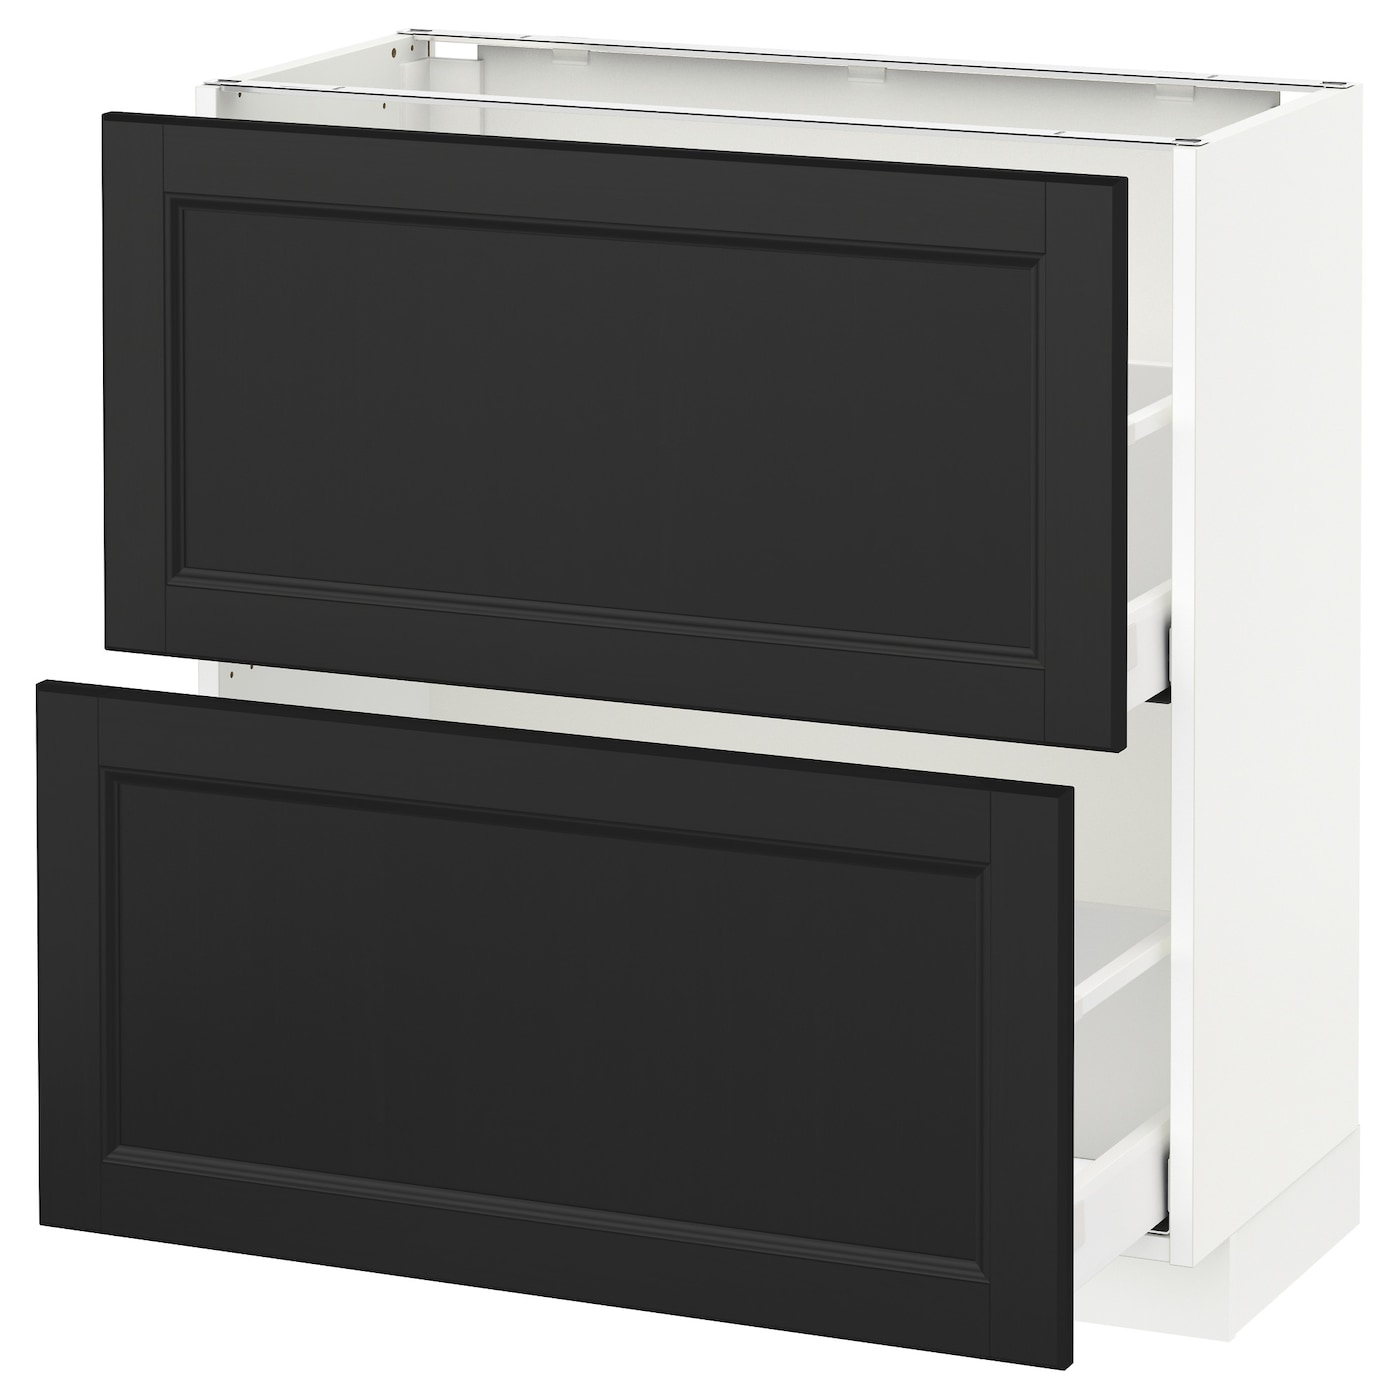 ikea black brown kitchen cabinets metod maximera base cabinet with 2 drawers white laxarby 17550